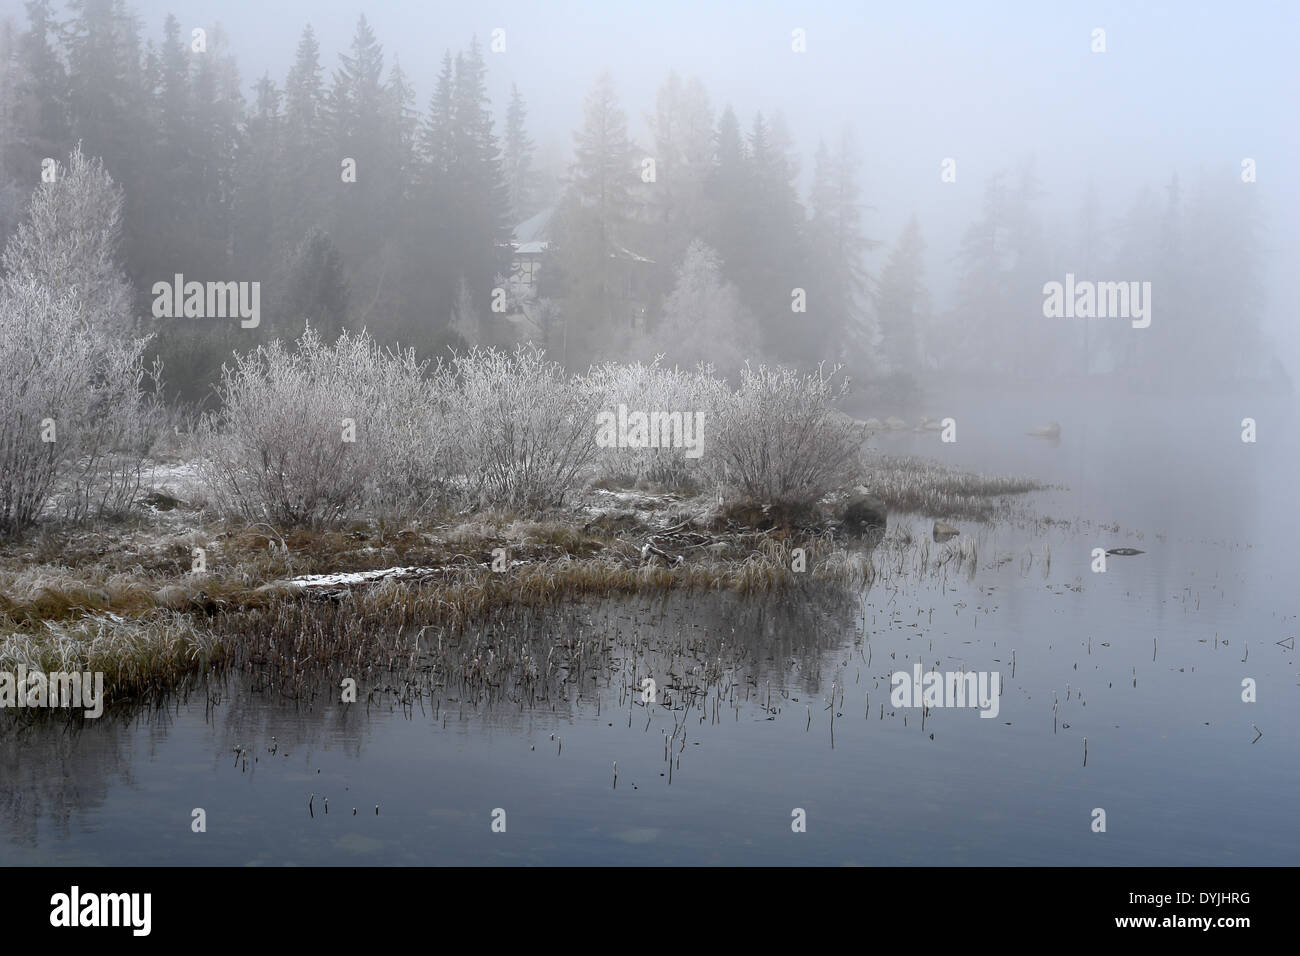 Lanscape with trees,waters and fogs on the Strbske Pleso,Slovakia - Stock Image